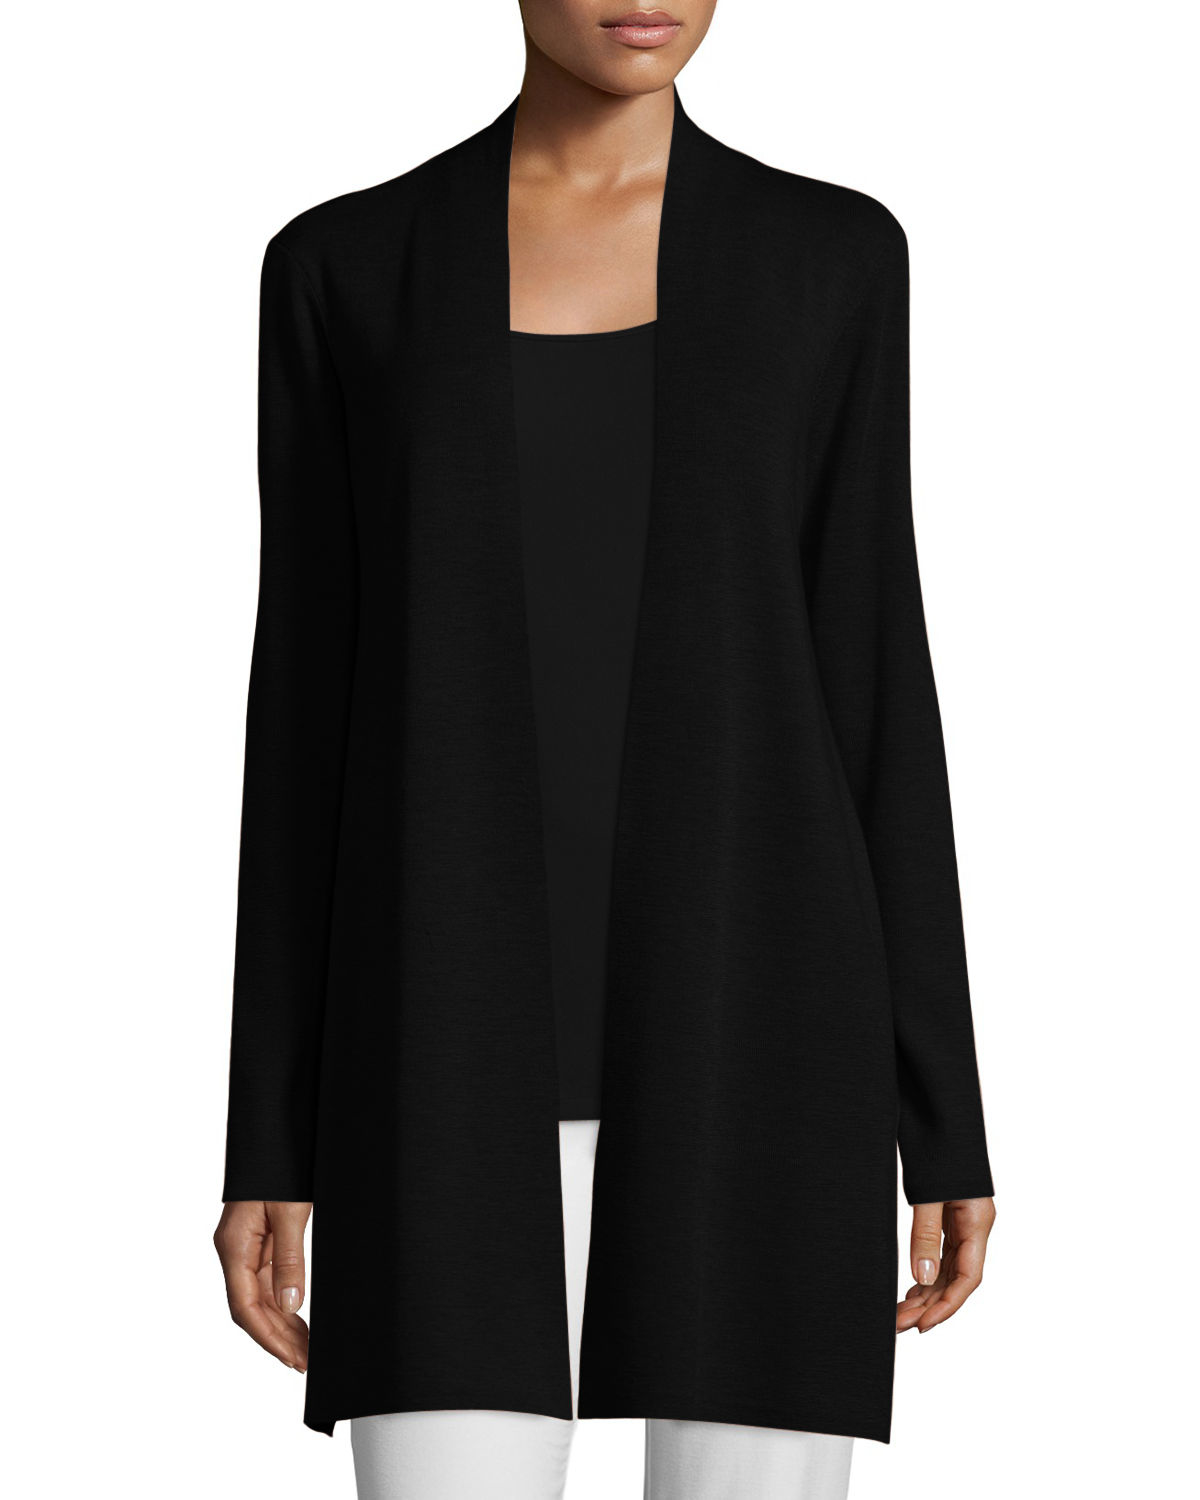 Eileen fisher Long Washable Merino Wool Cardigan in Black | Lyst